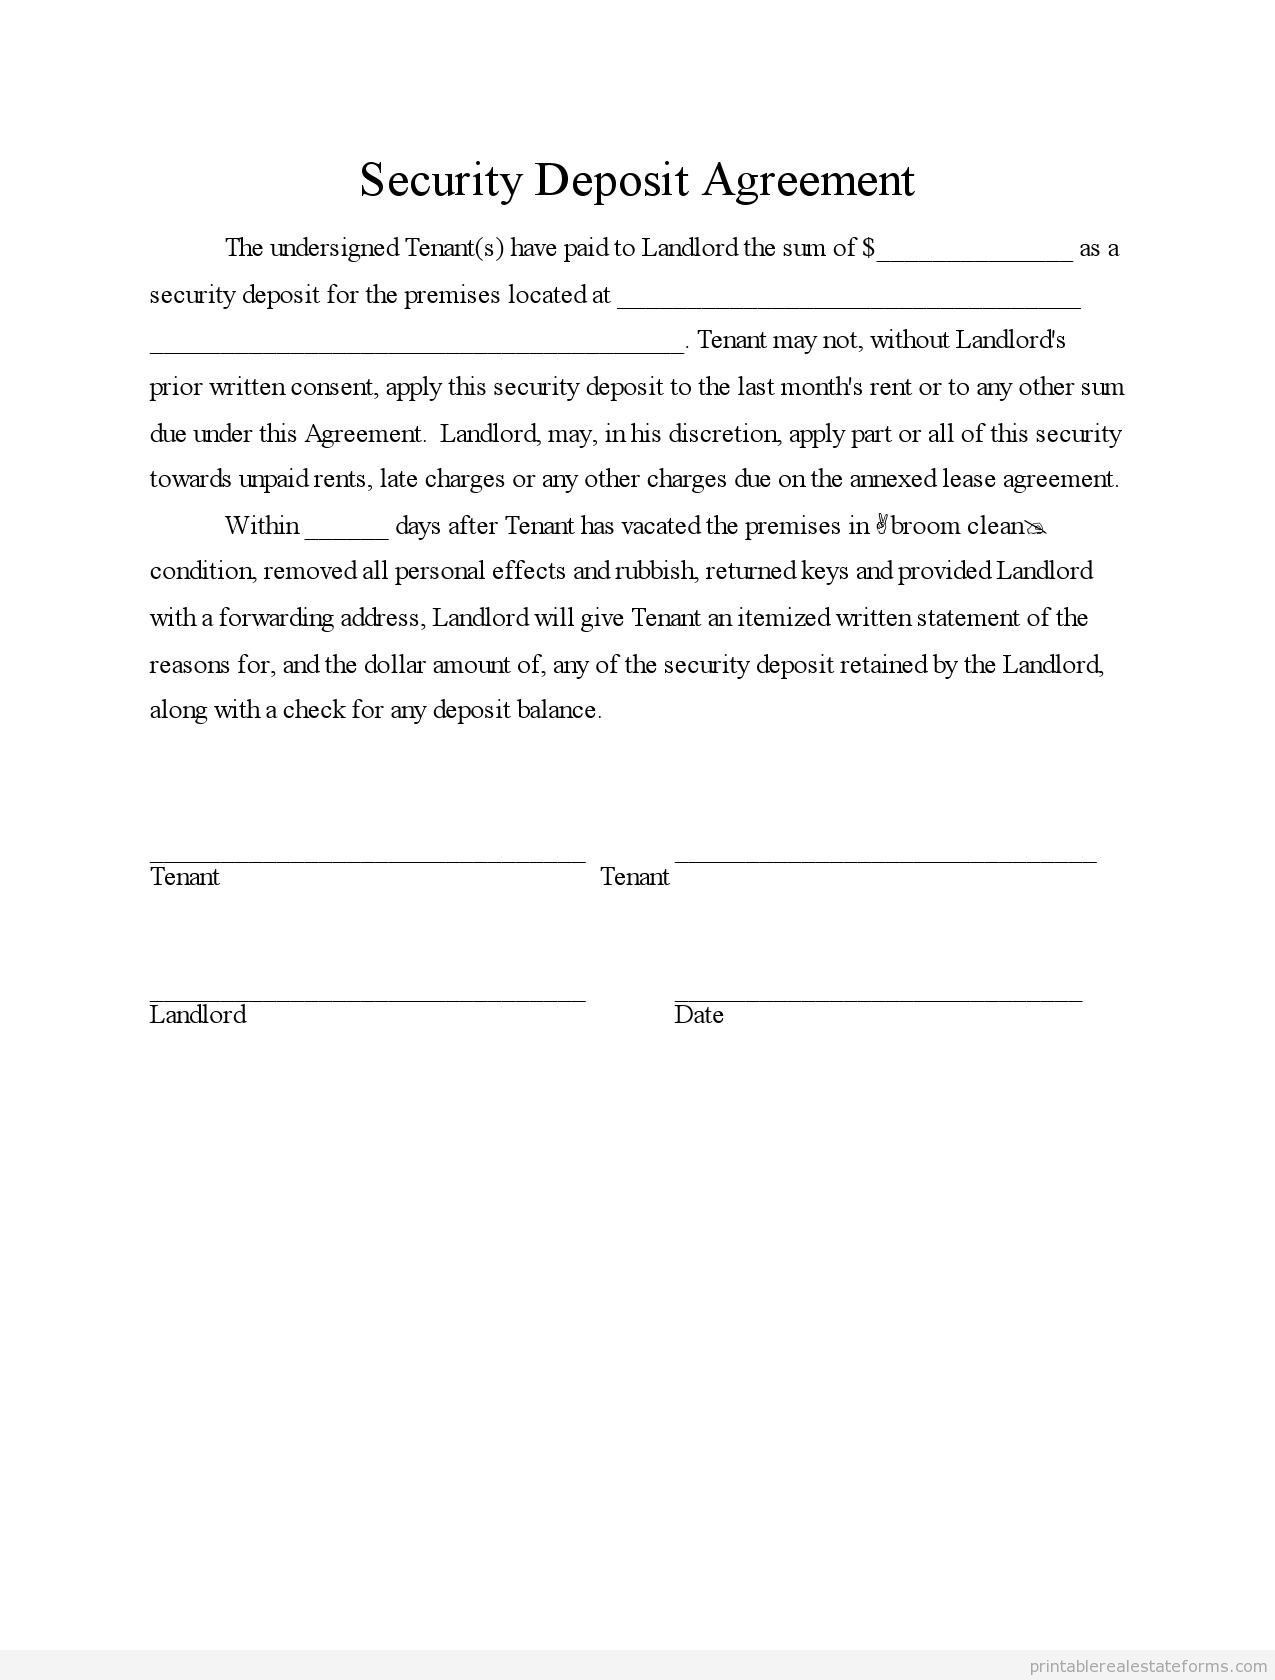 Sample printable security deposit agreement form sample for Car deposit contract template